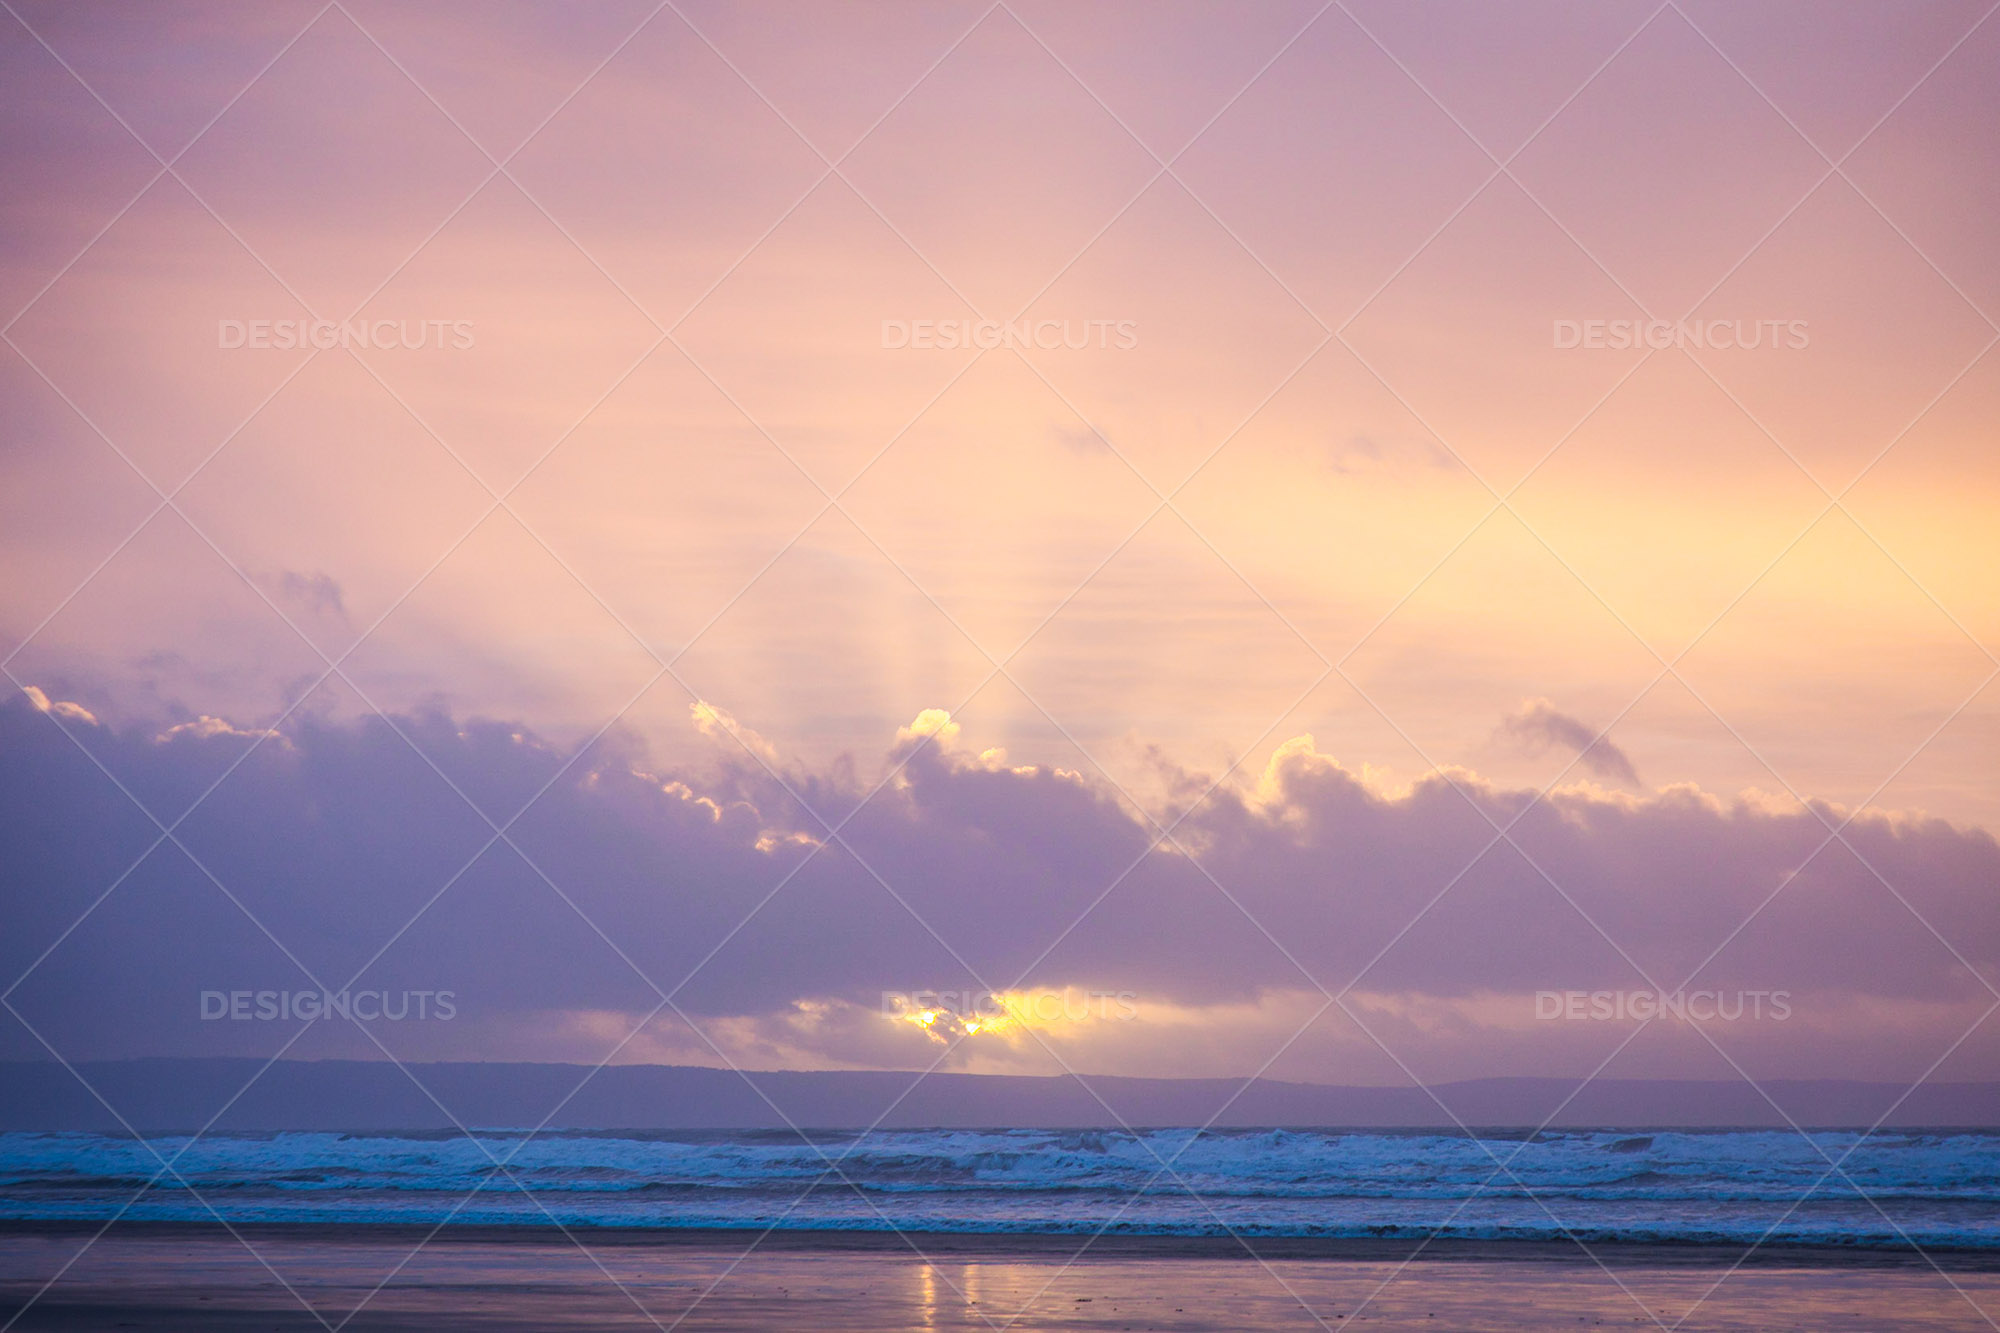 Sunset Over The Beach At Saunton Sands, Devon 4